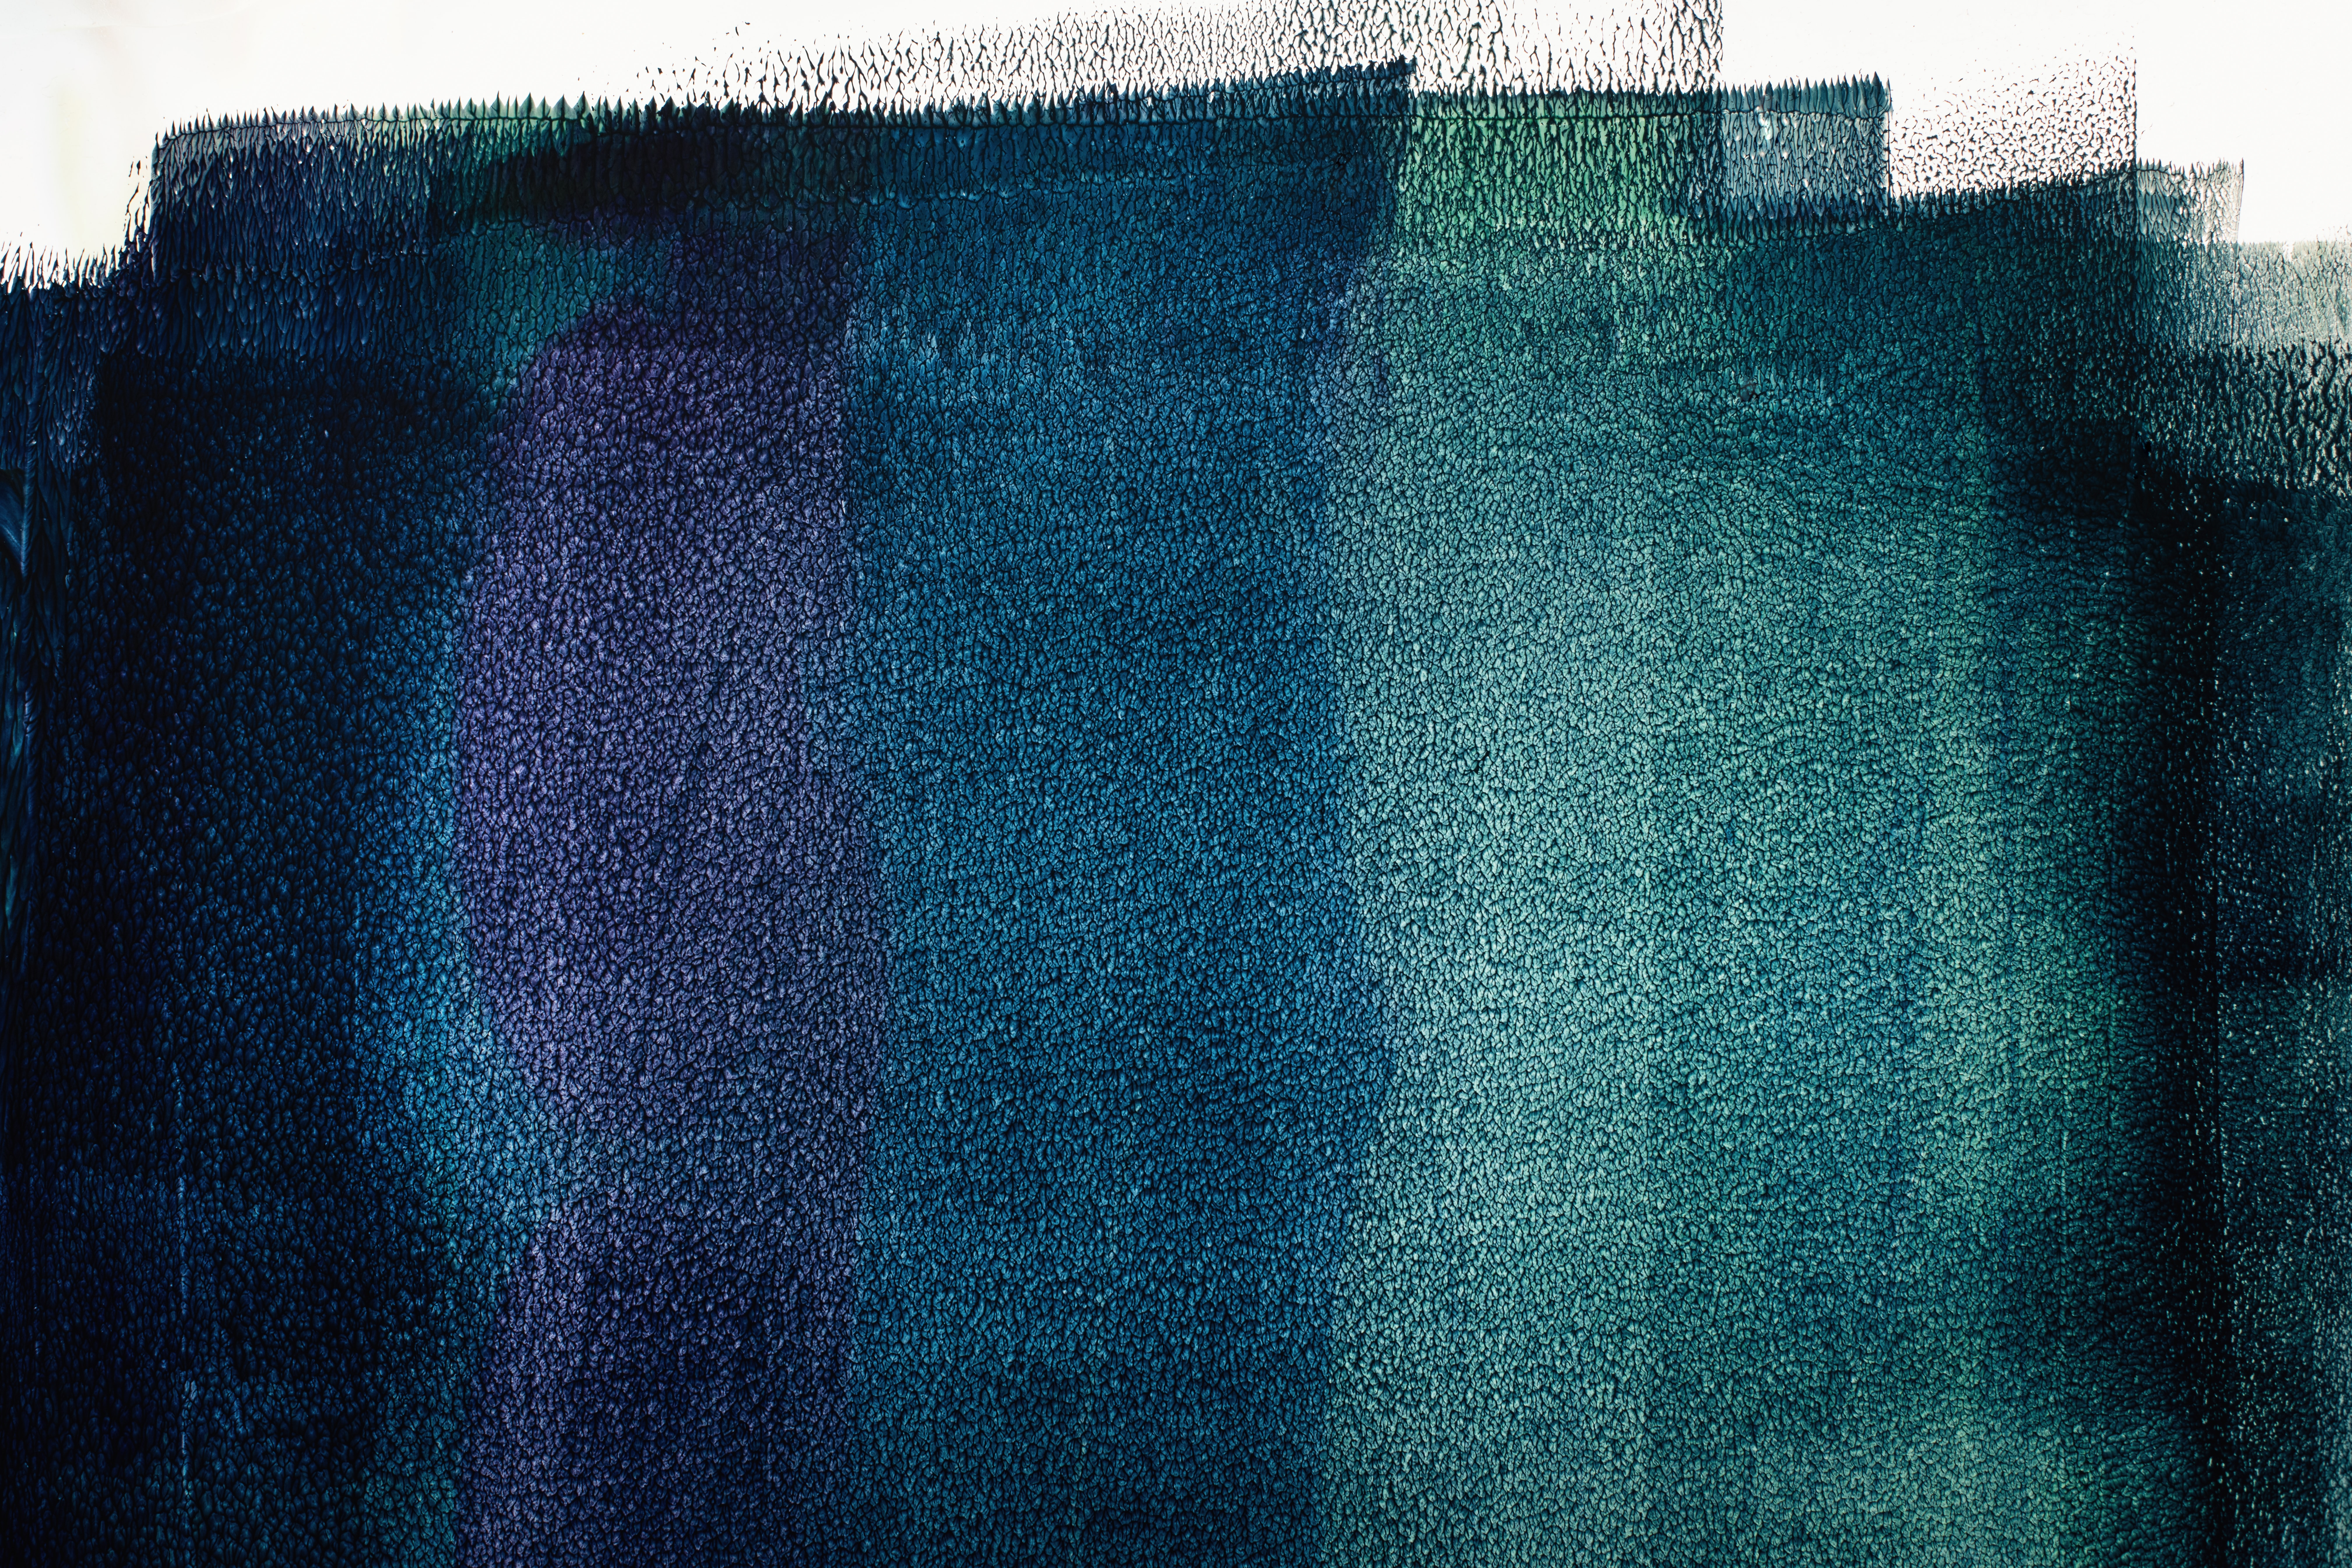 Vertical swaths of paint, in deep blues and indigos, on a wall.